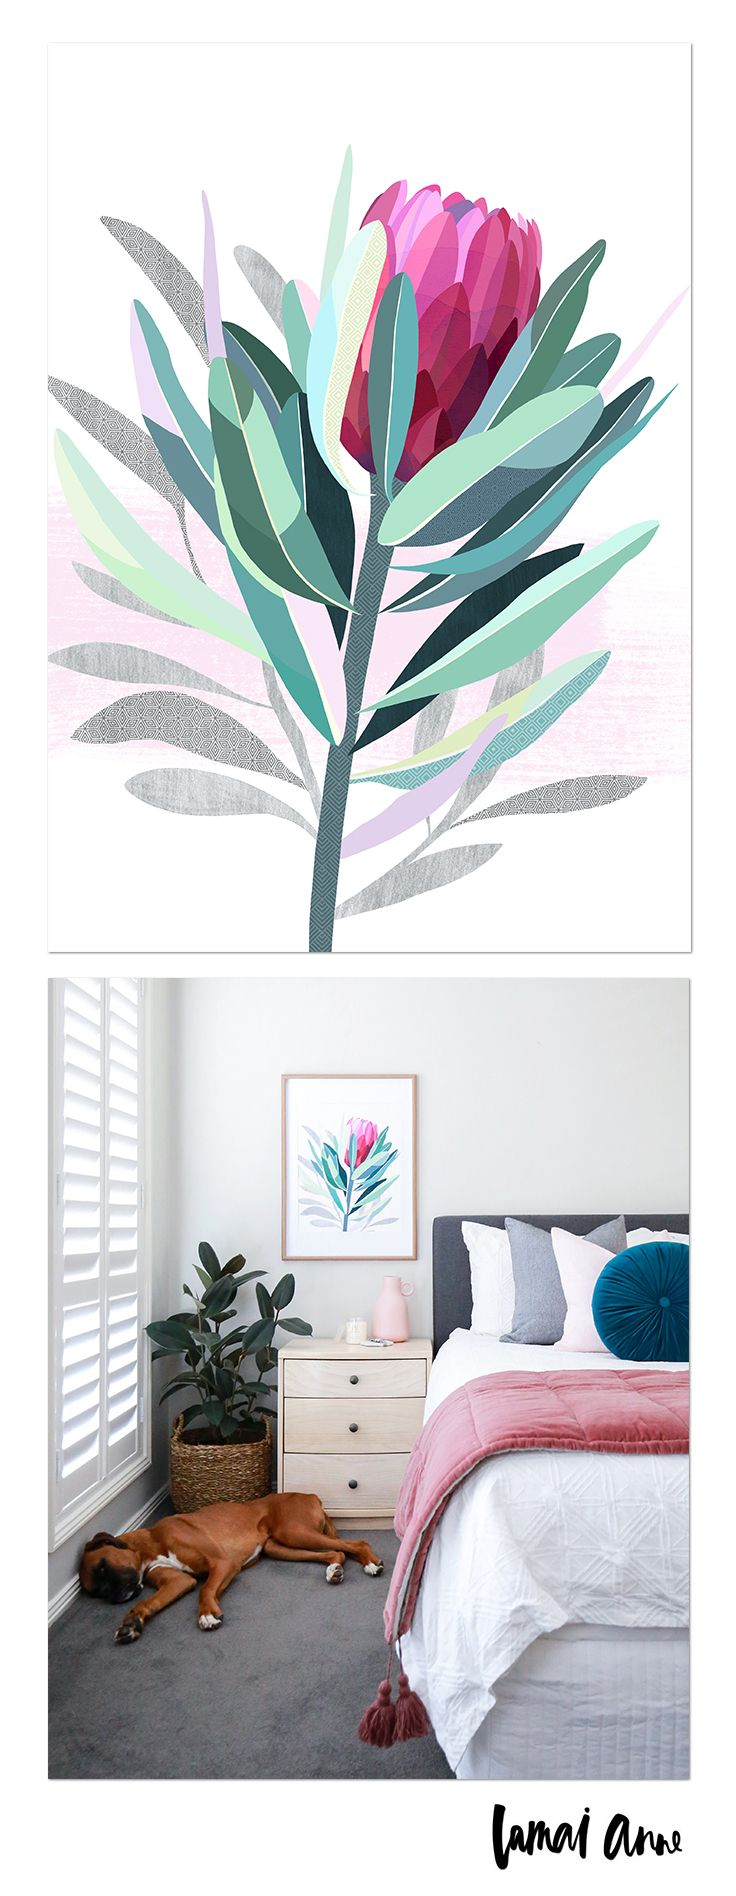 Protea limited edition giclee art print by Australian artist Lamai Anne. What a wonderful way of bringing the Australian outdoors and a real pop of colour into your home. Lamai's artwork is a collaboration of Native Flora and Fauna that encompasses her home and surroundings. Her illustrations of Australian Natives are meticulously brought to life through her digital art, and the composition between the seasons to create vivid, colourful and eye catching pieces.